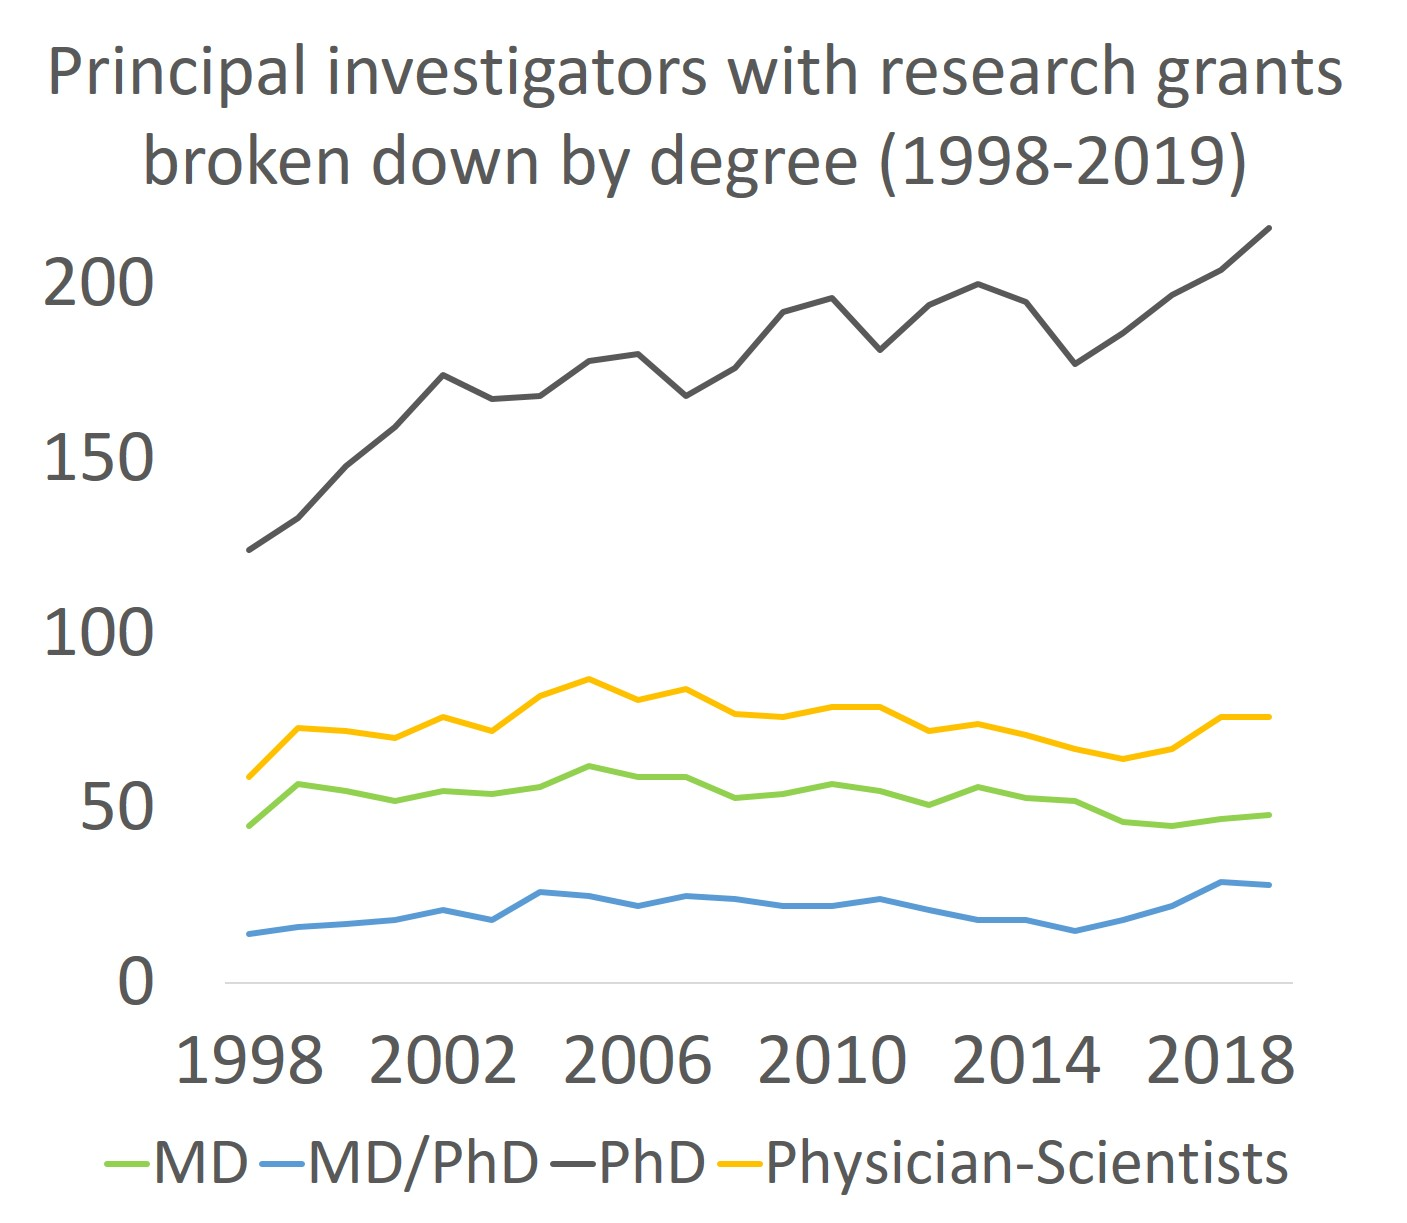 Graph showing the number of principal investigators at OHSU with research project grants broken down by degree from 1998-2019.